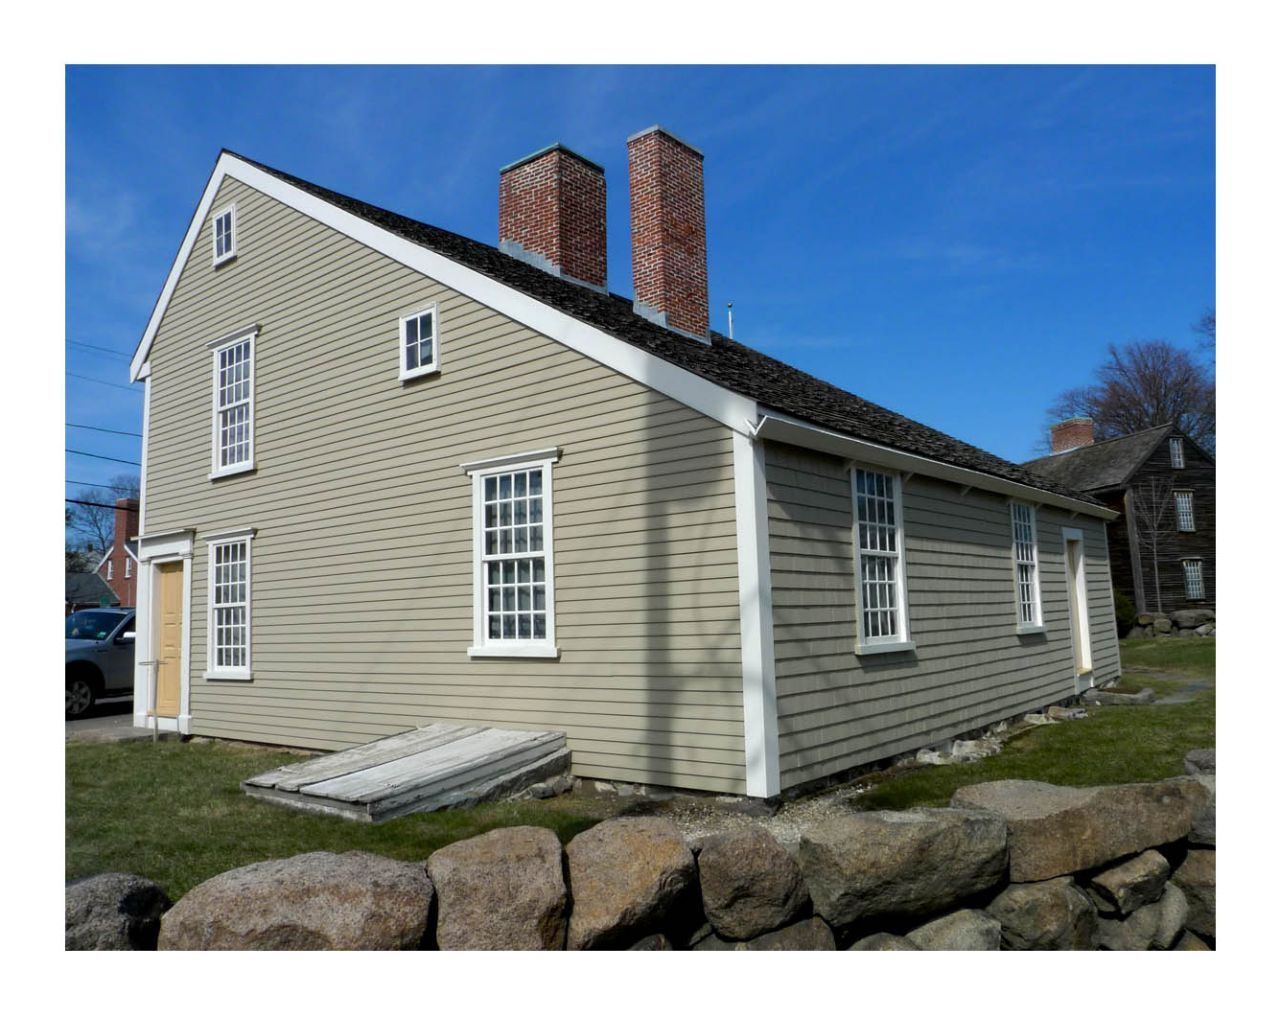 Architectural Styles Saltbox House With A Slanted Roof And Has 1 Story In The Back But 2 In The